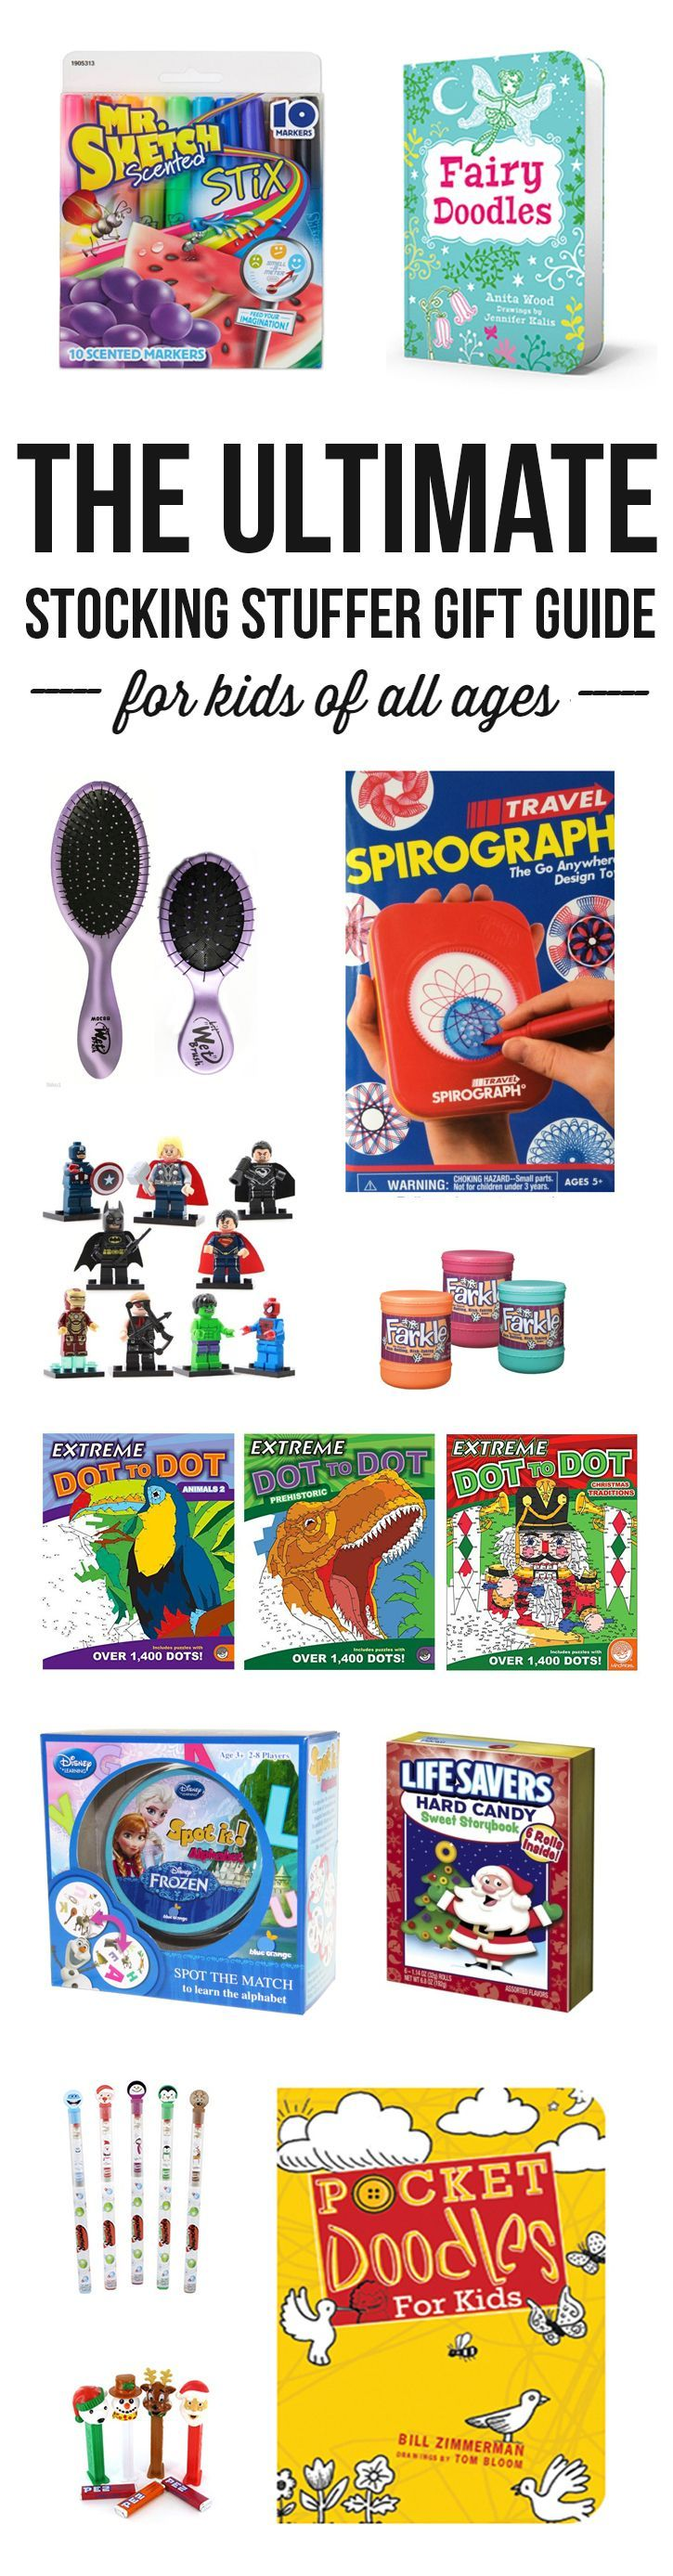 40+ unique and memorable stocking stuffer ideas for kids of all ages!